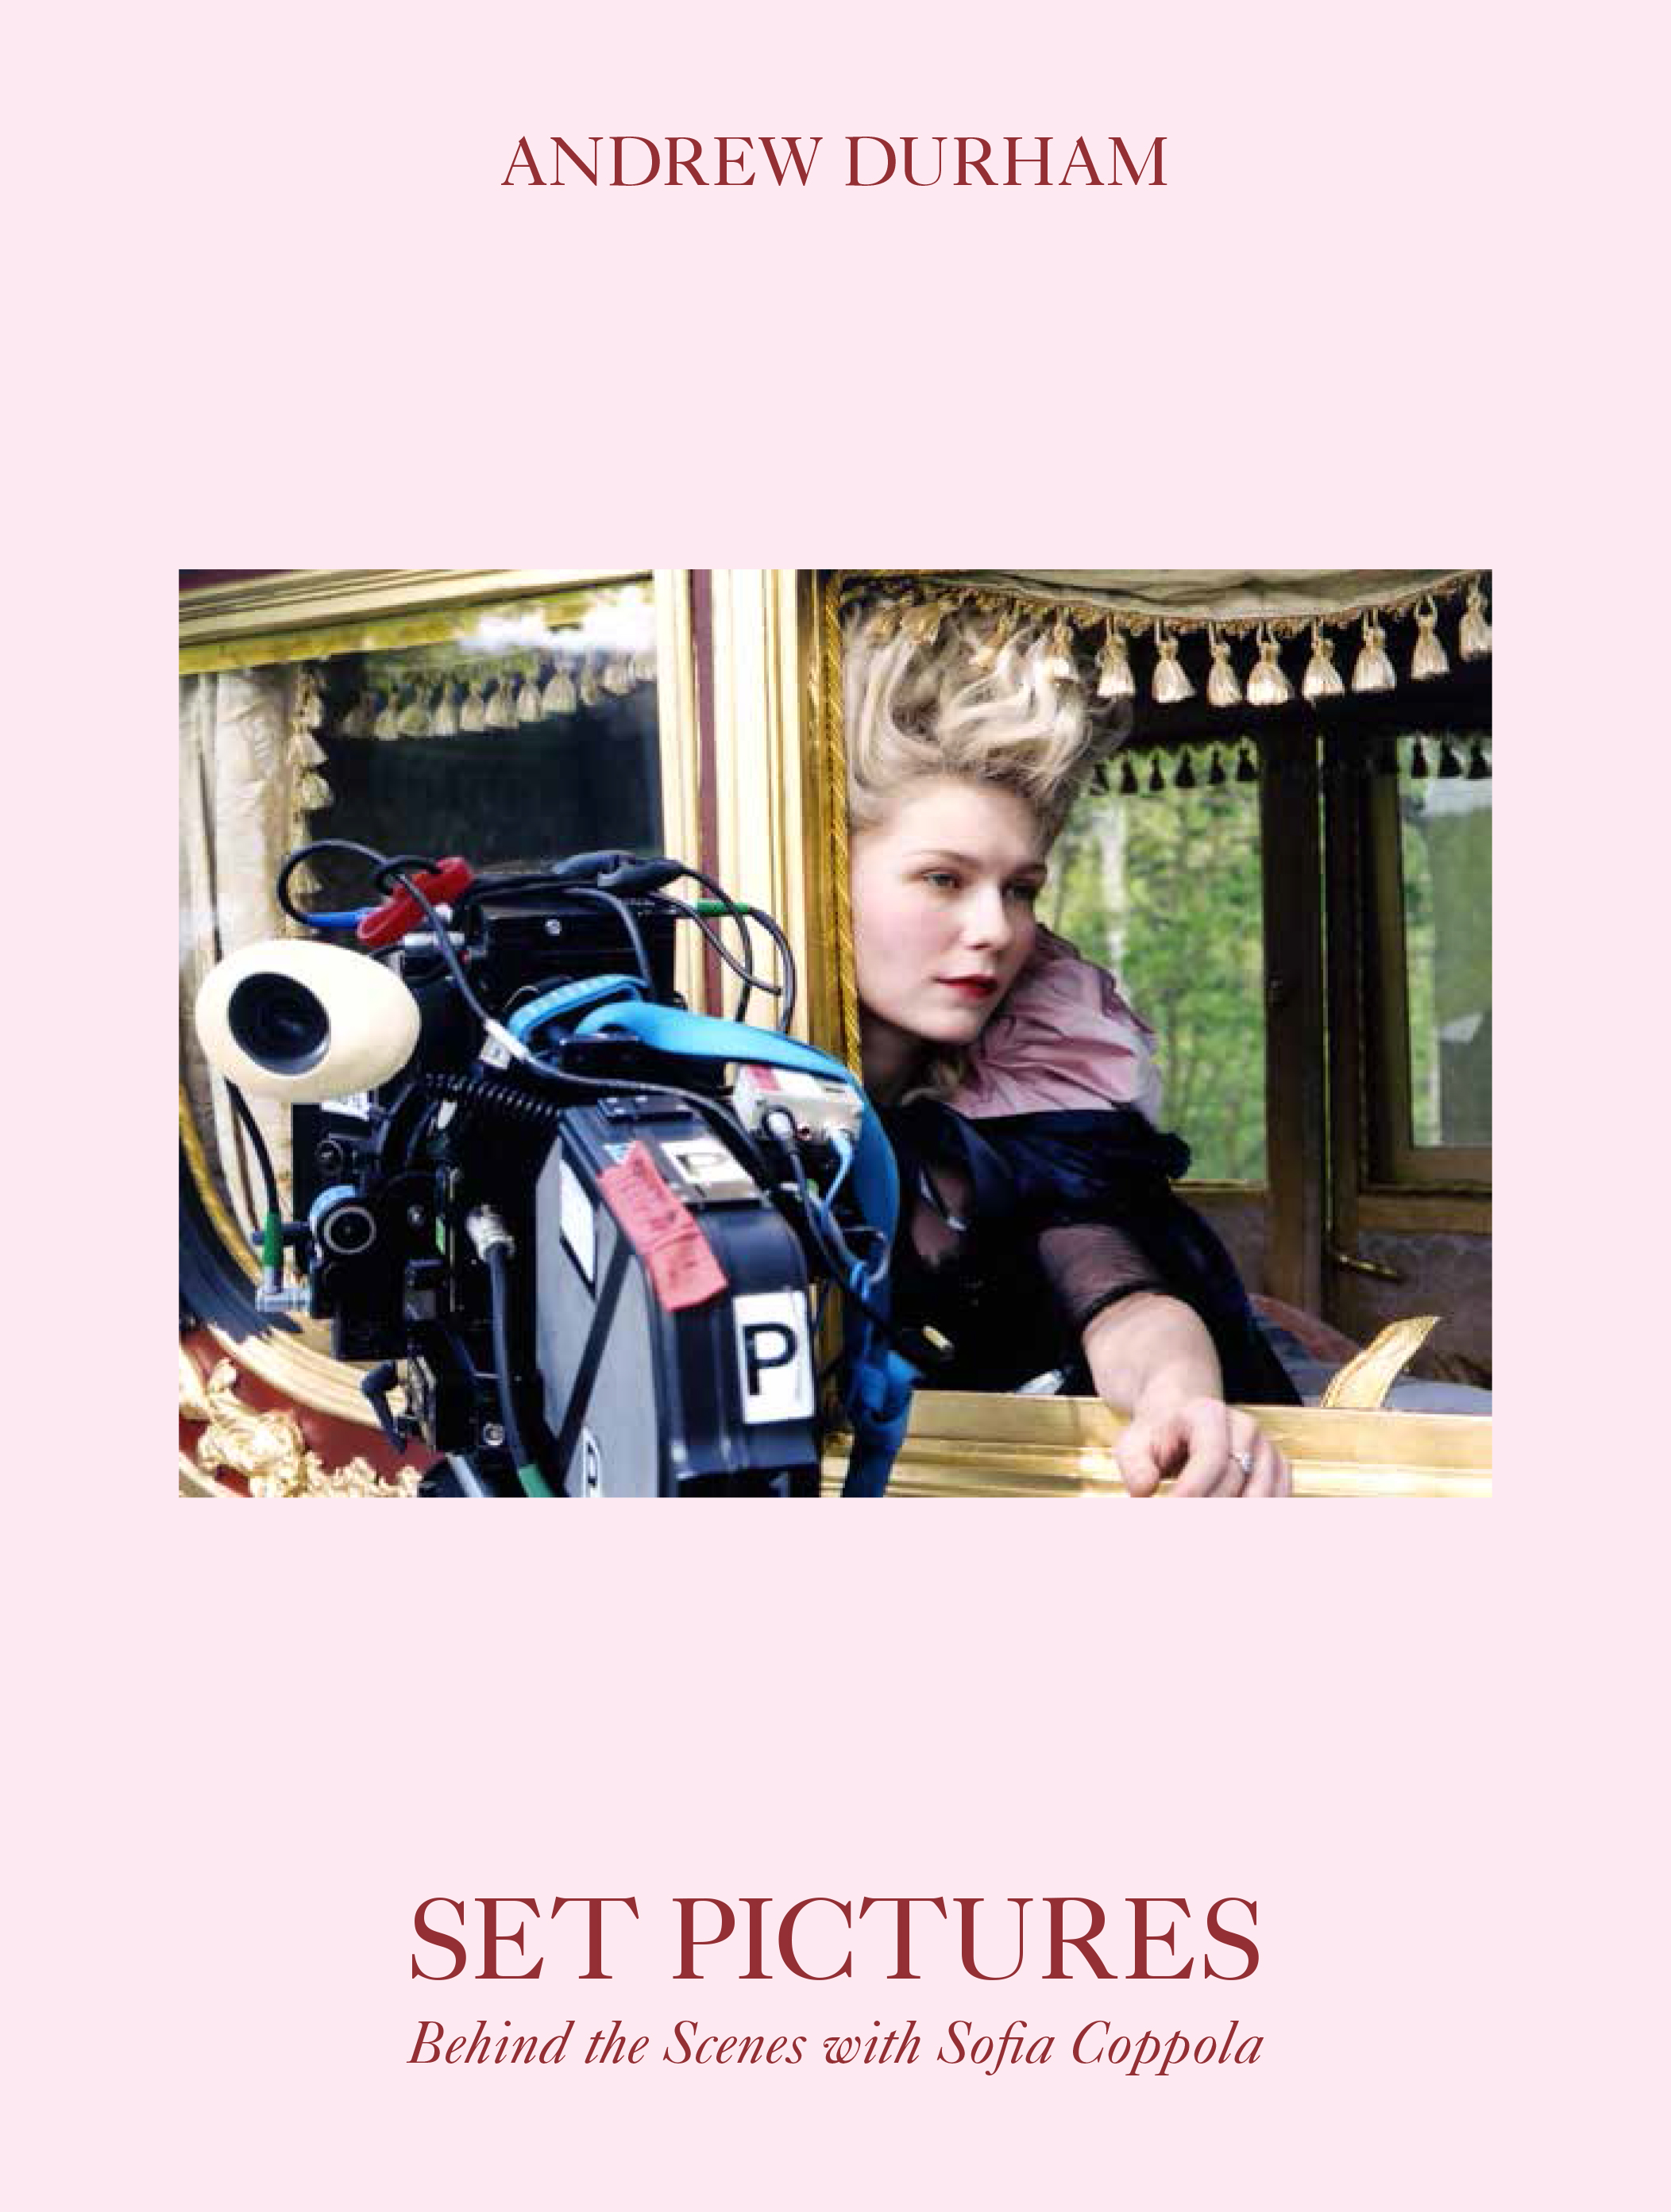 Andrew Durham SET PICTURES Behind the Scenes with Sofia Coppola<br>